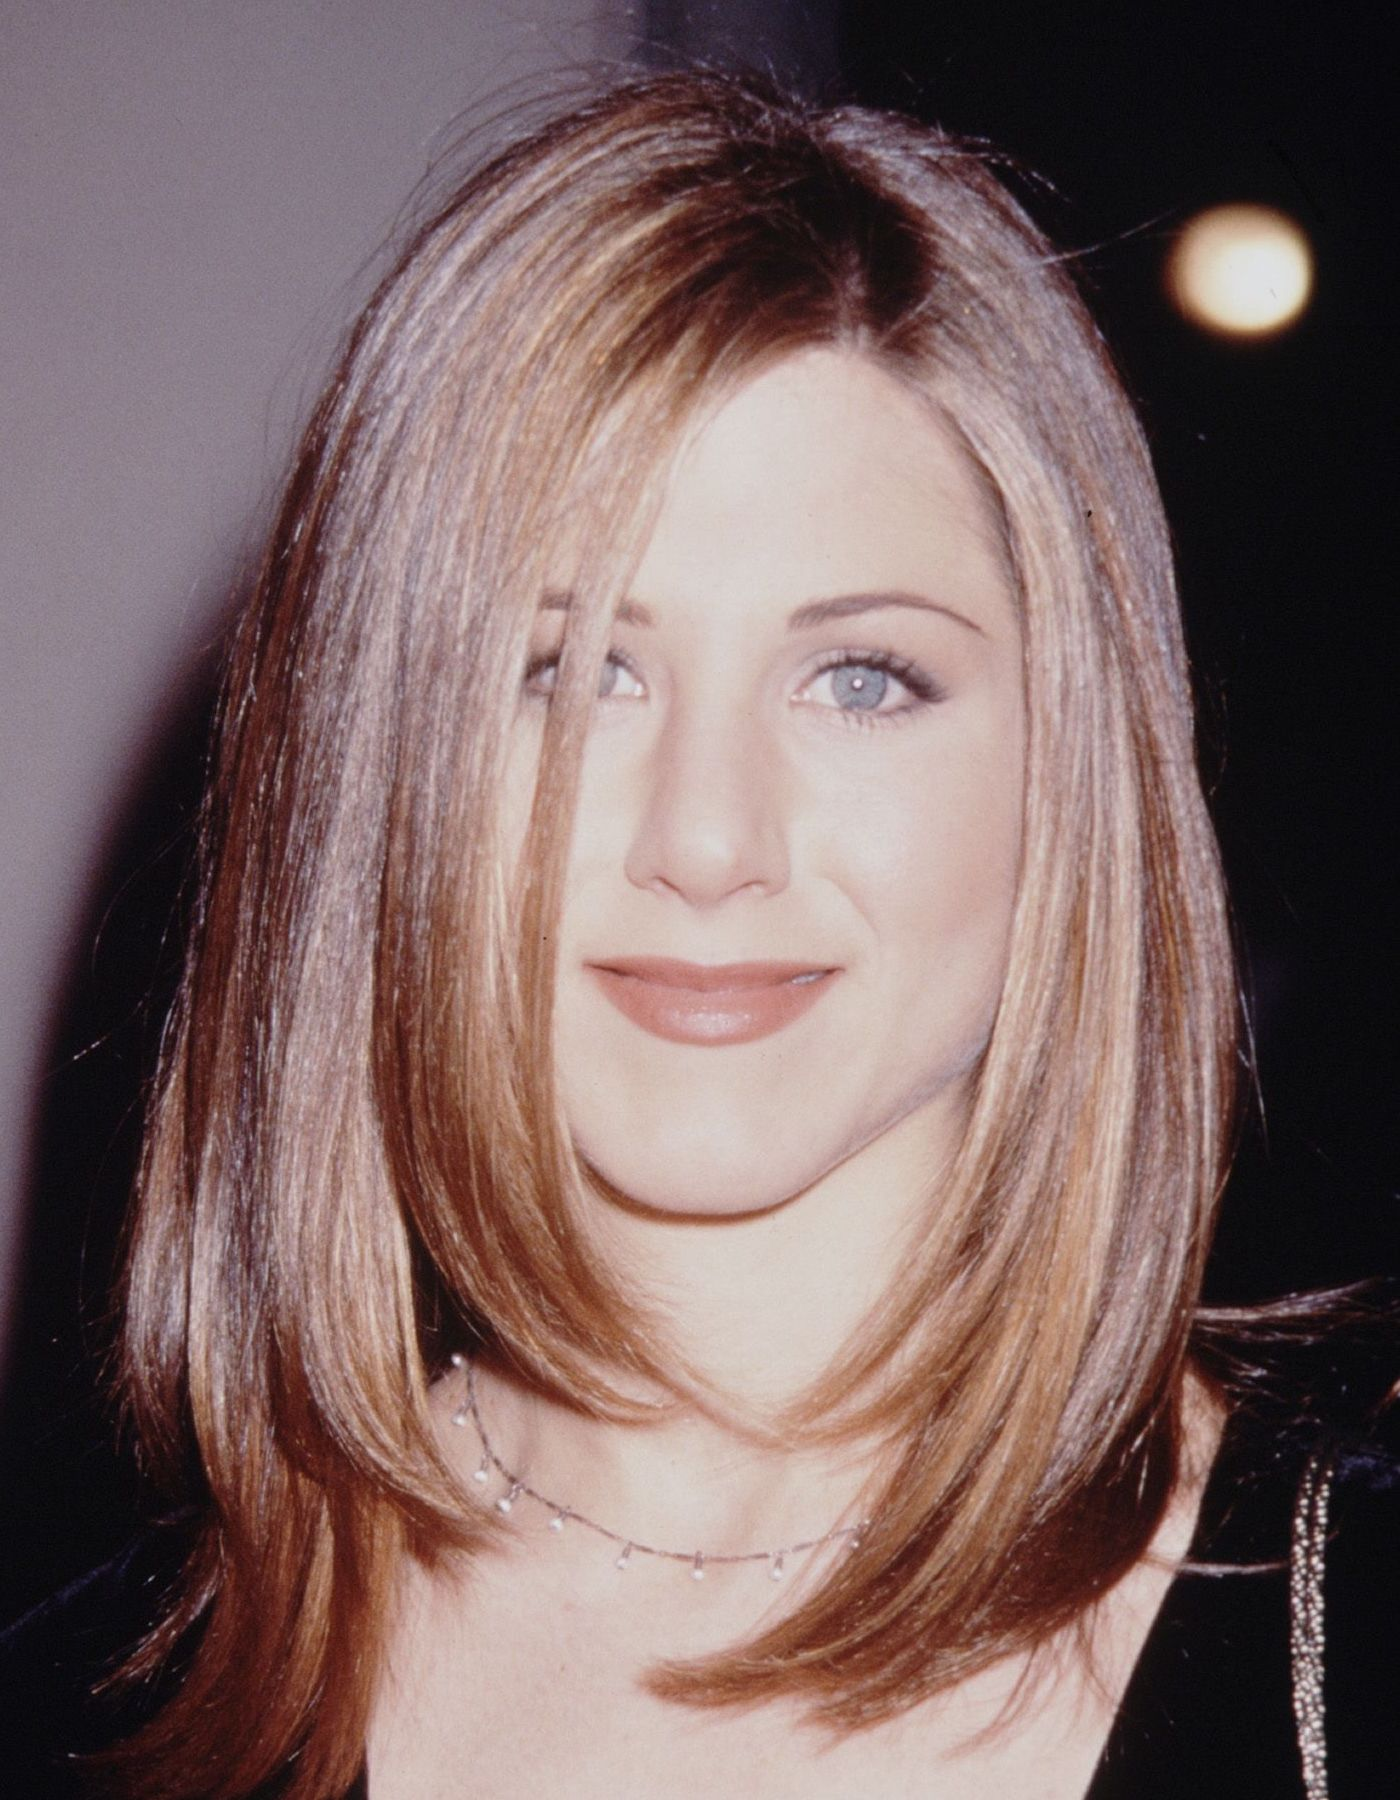 4 HAIR 20 Things You Never Knew About Jennifer Aniston